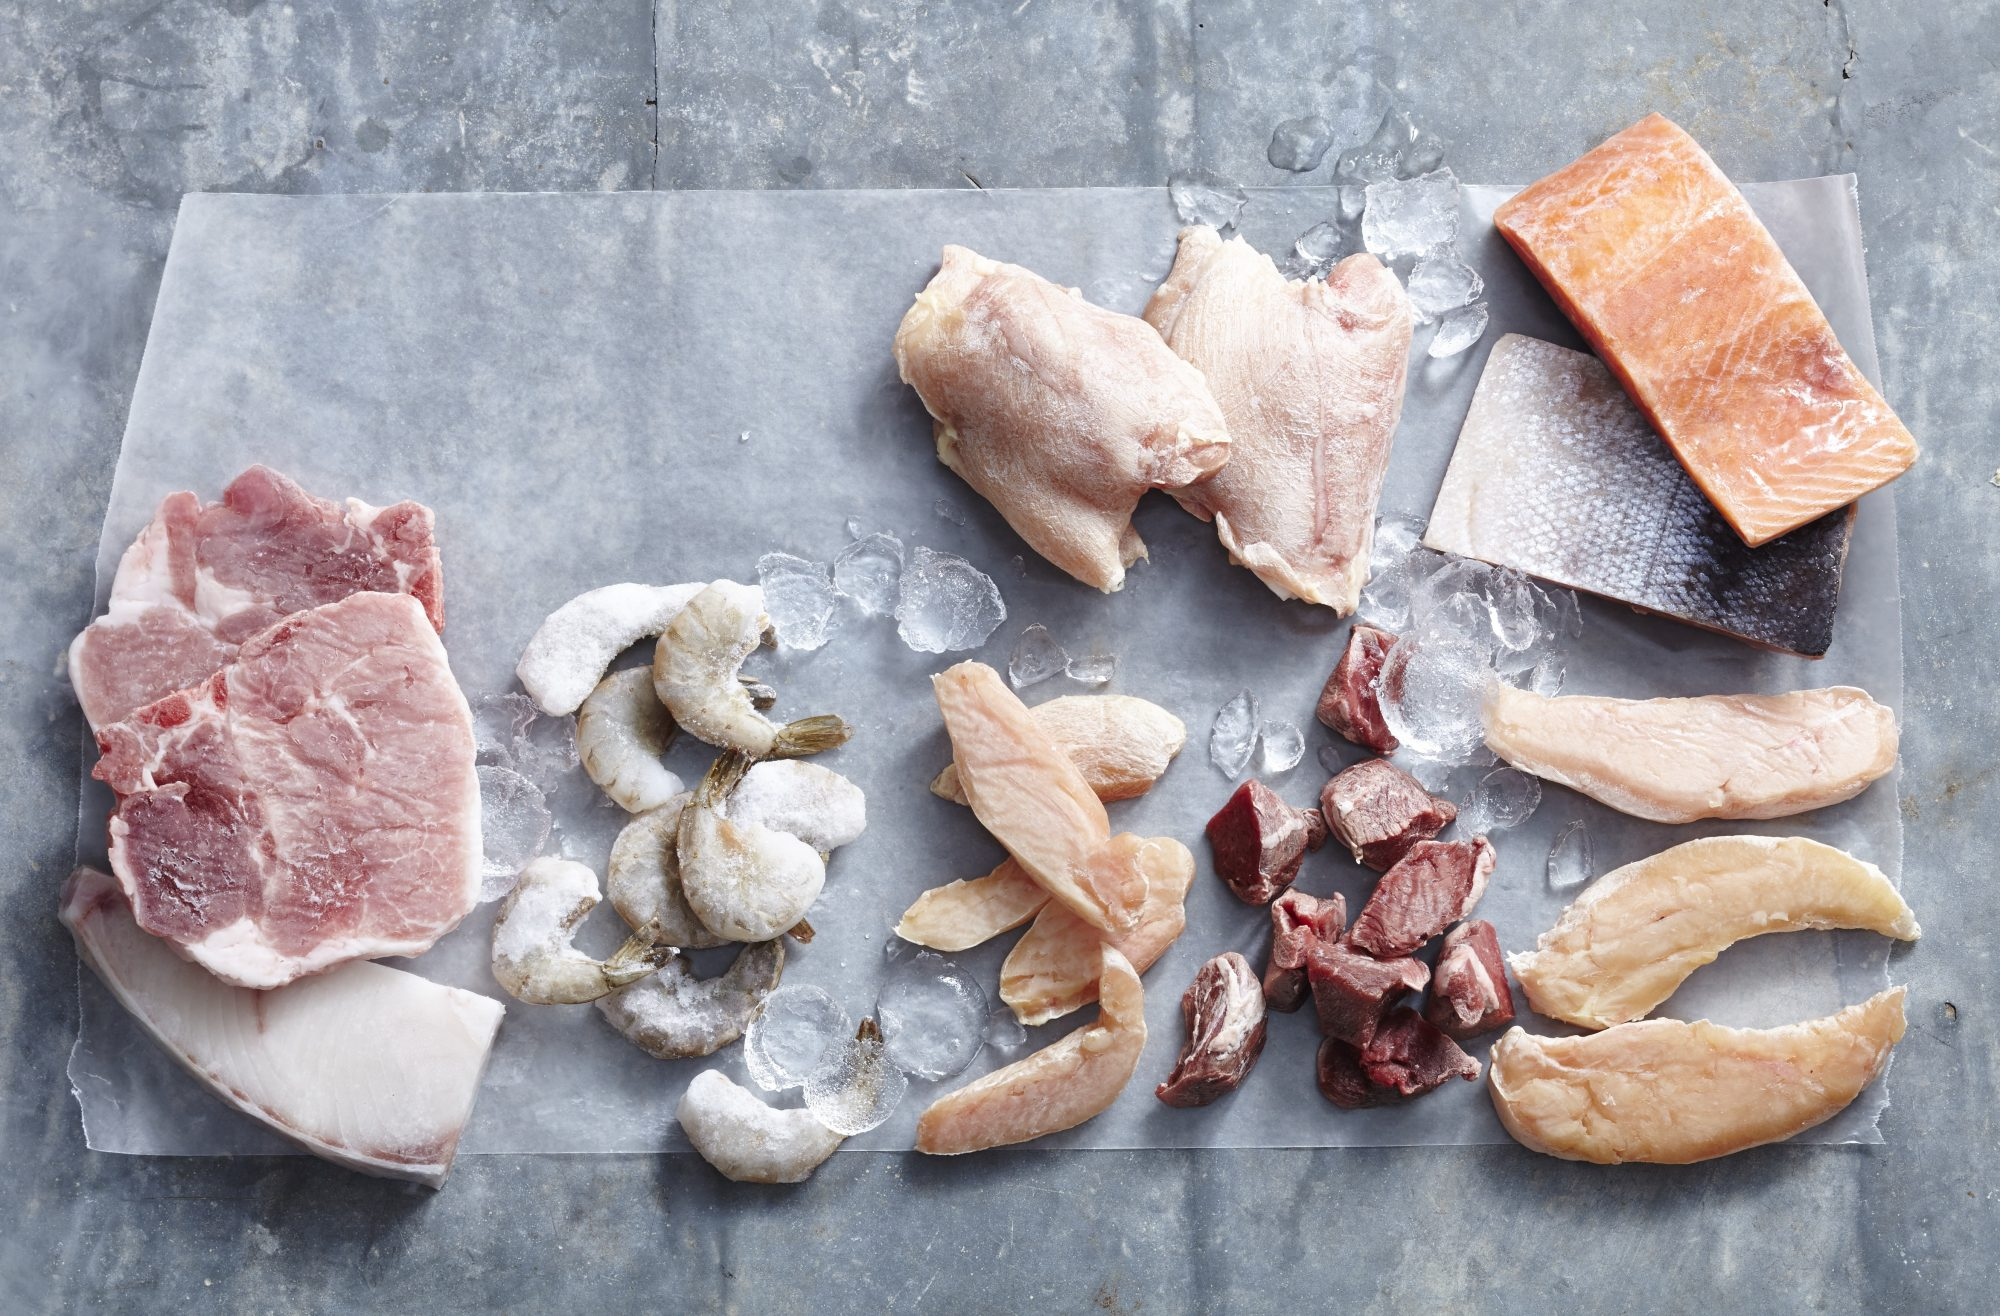 frozen meats and seafood